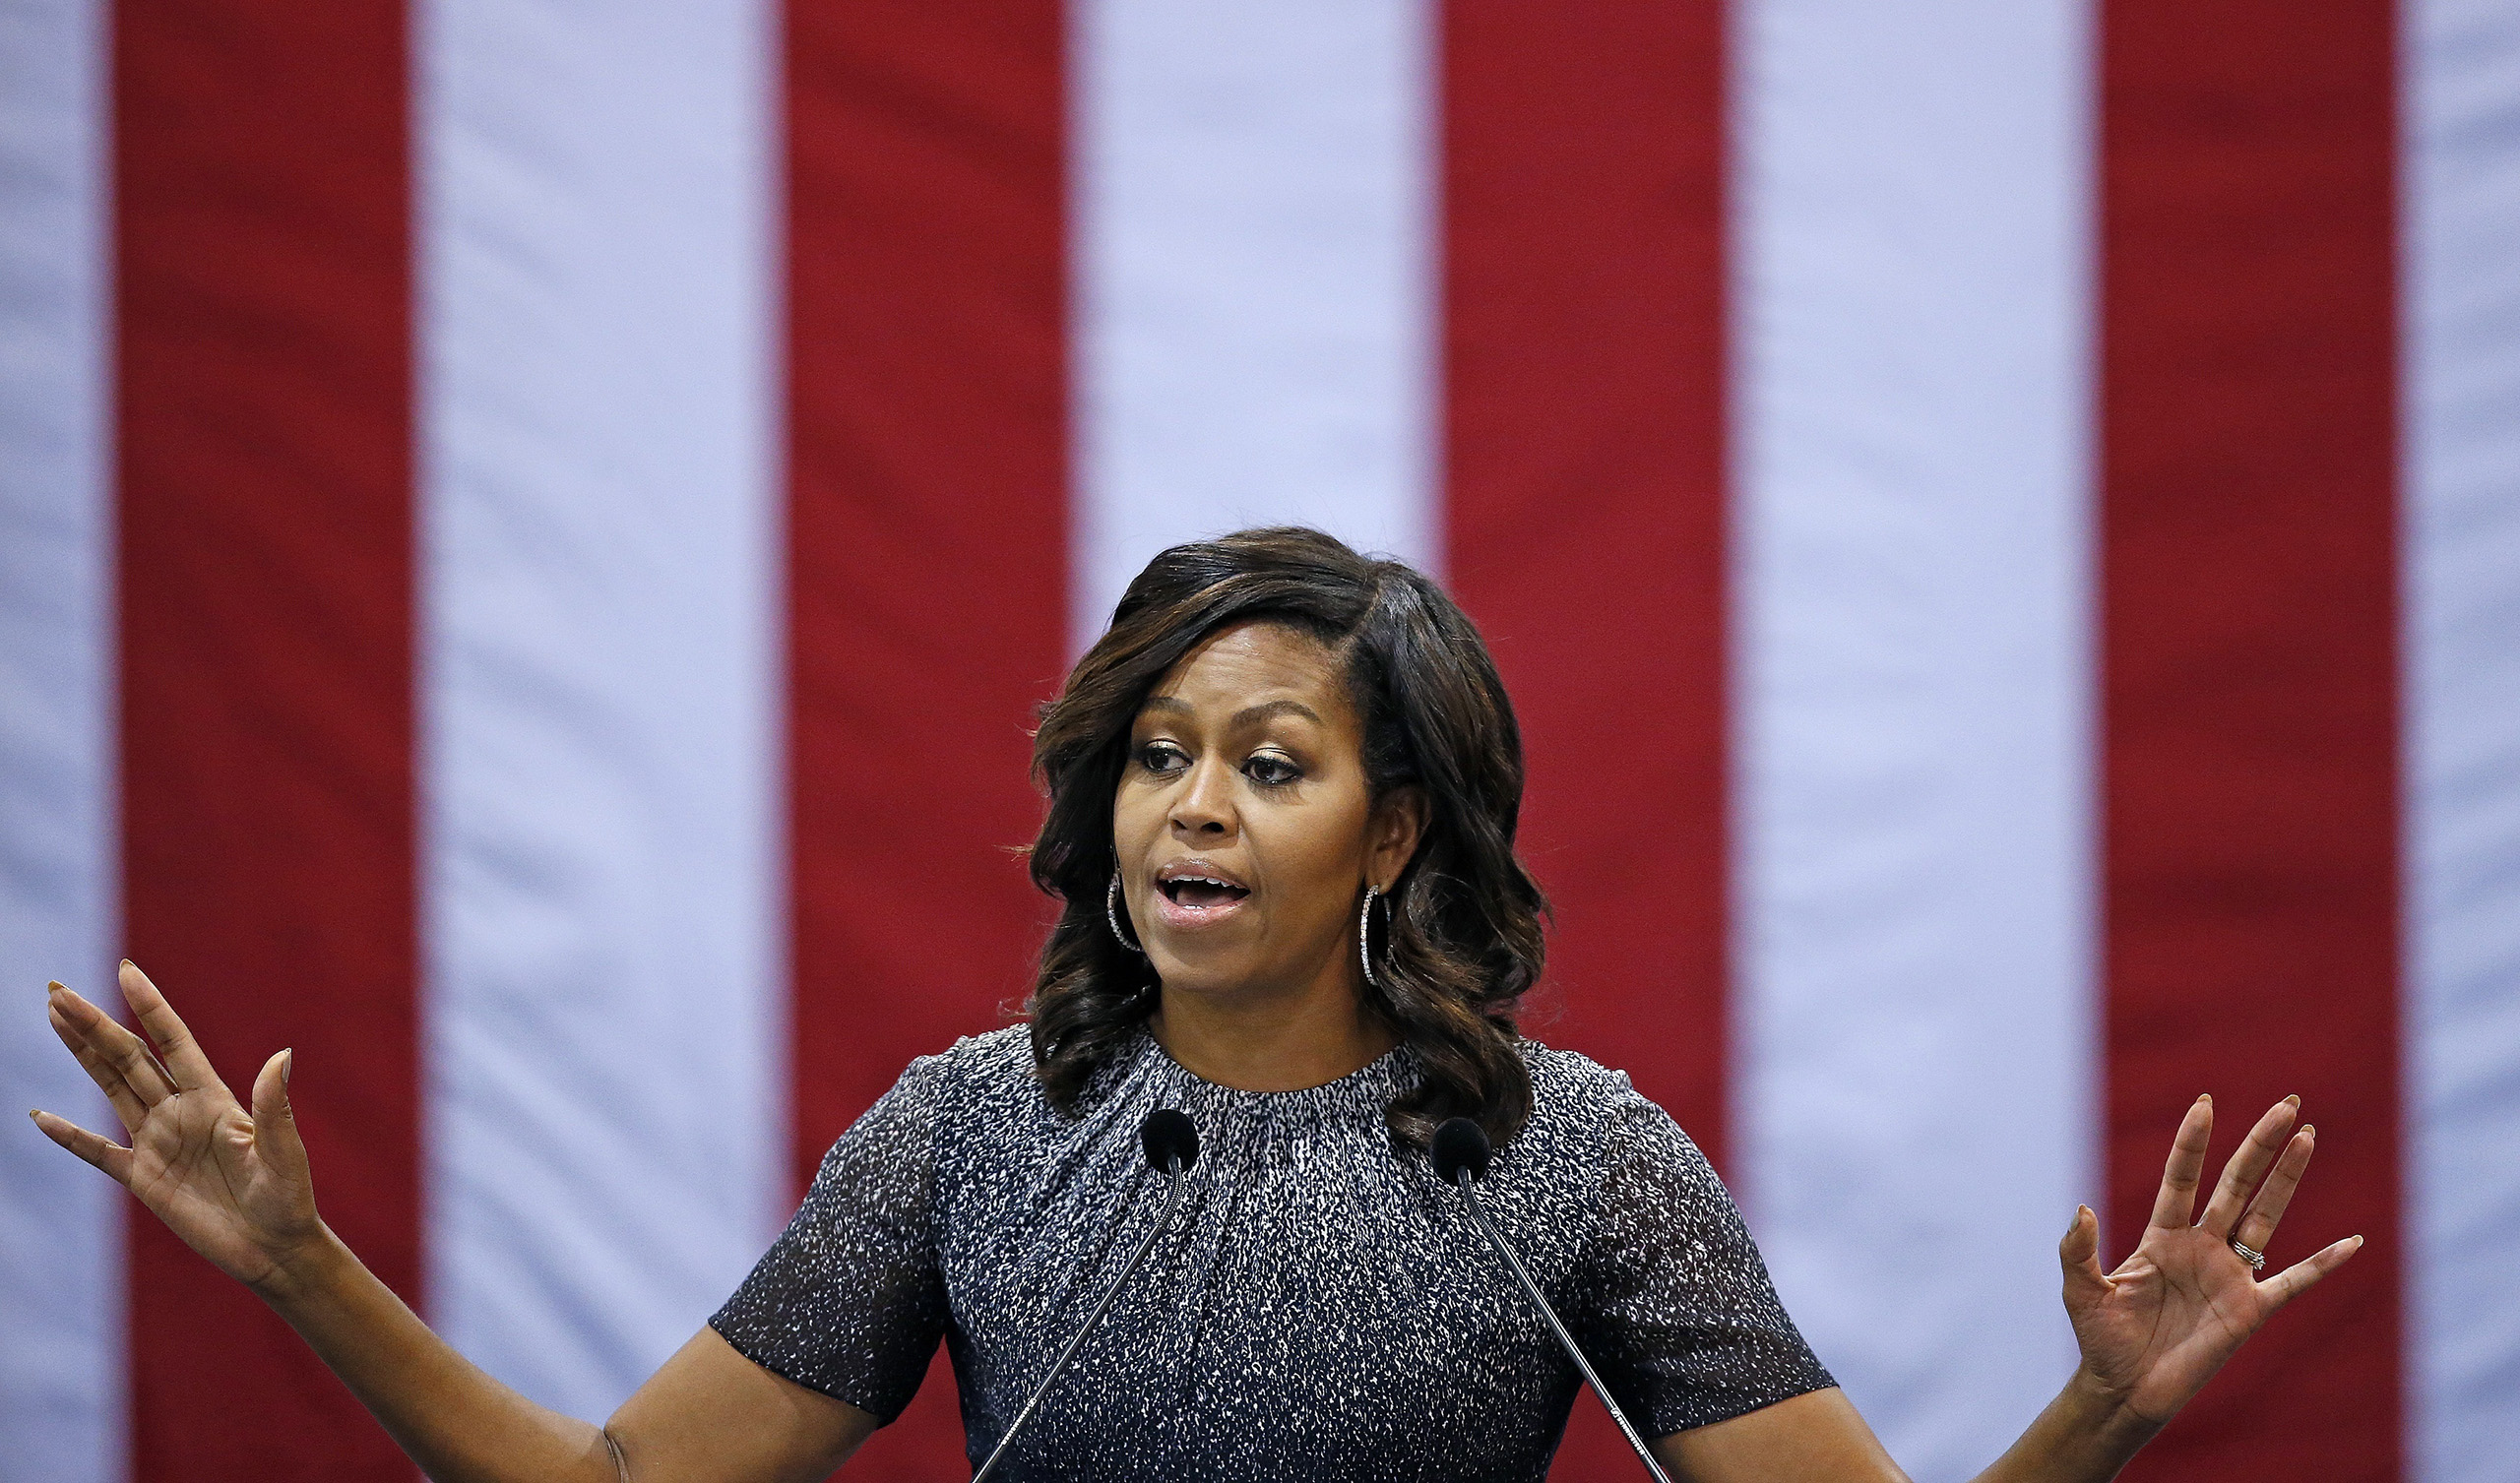 Michelle Obama speaks during a campaign rally for Hillary Clinton, on Oct. 20, 2016, in Phoenix.